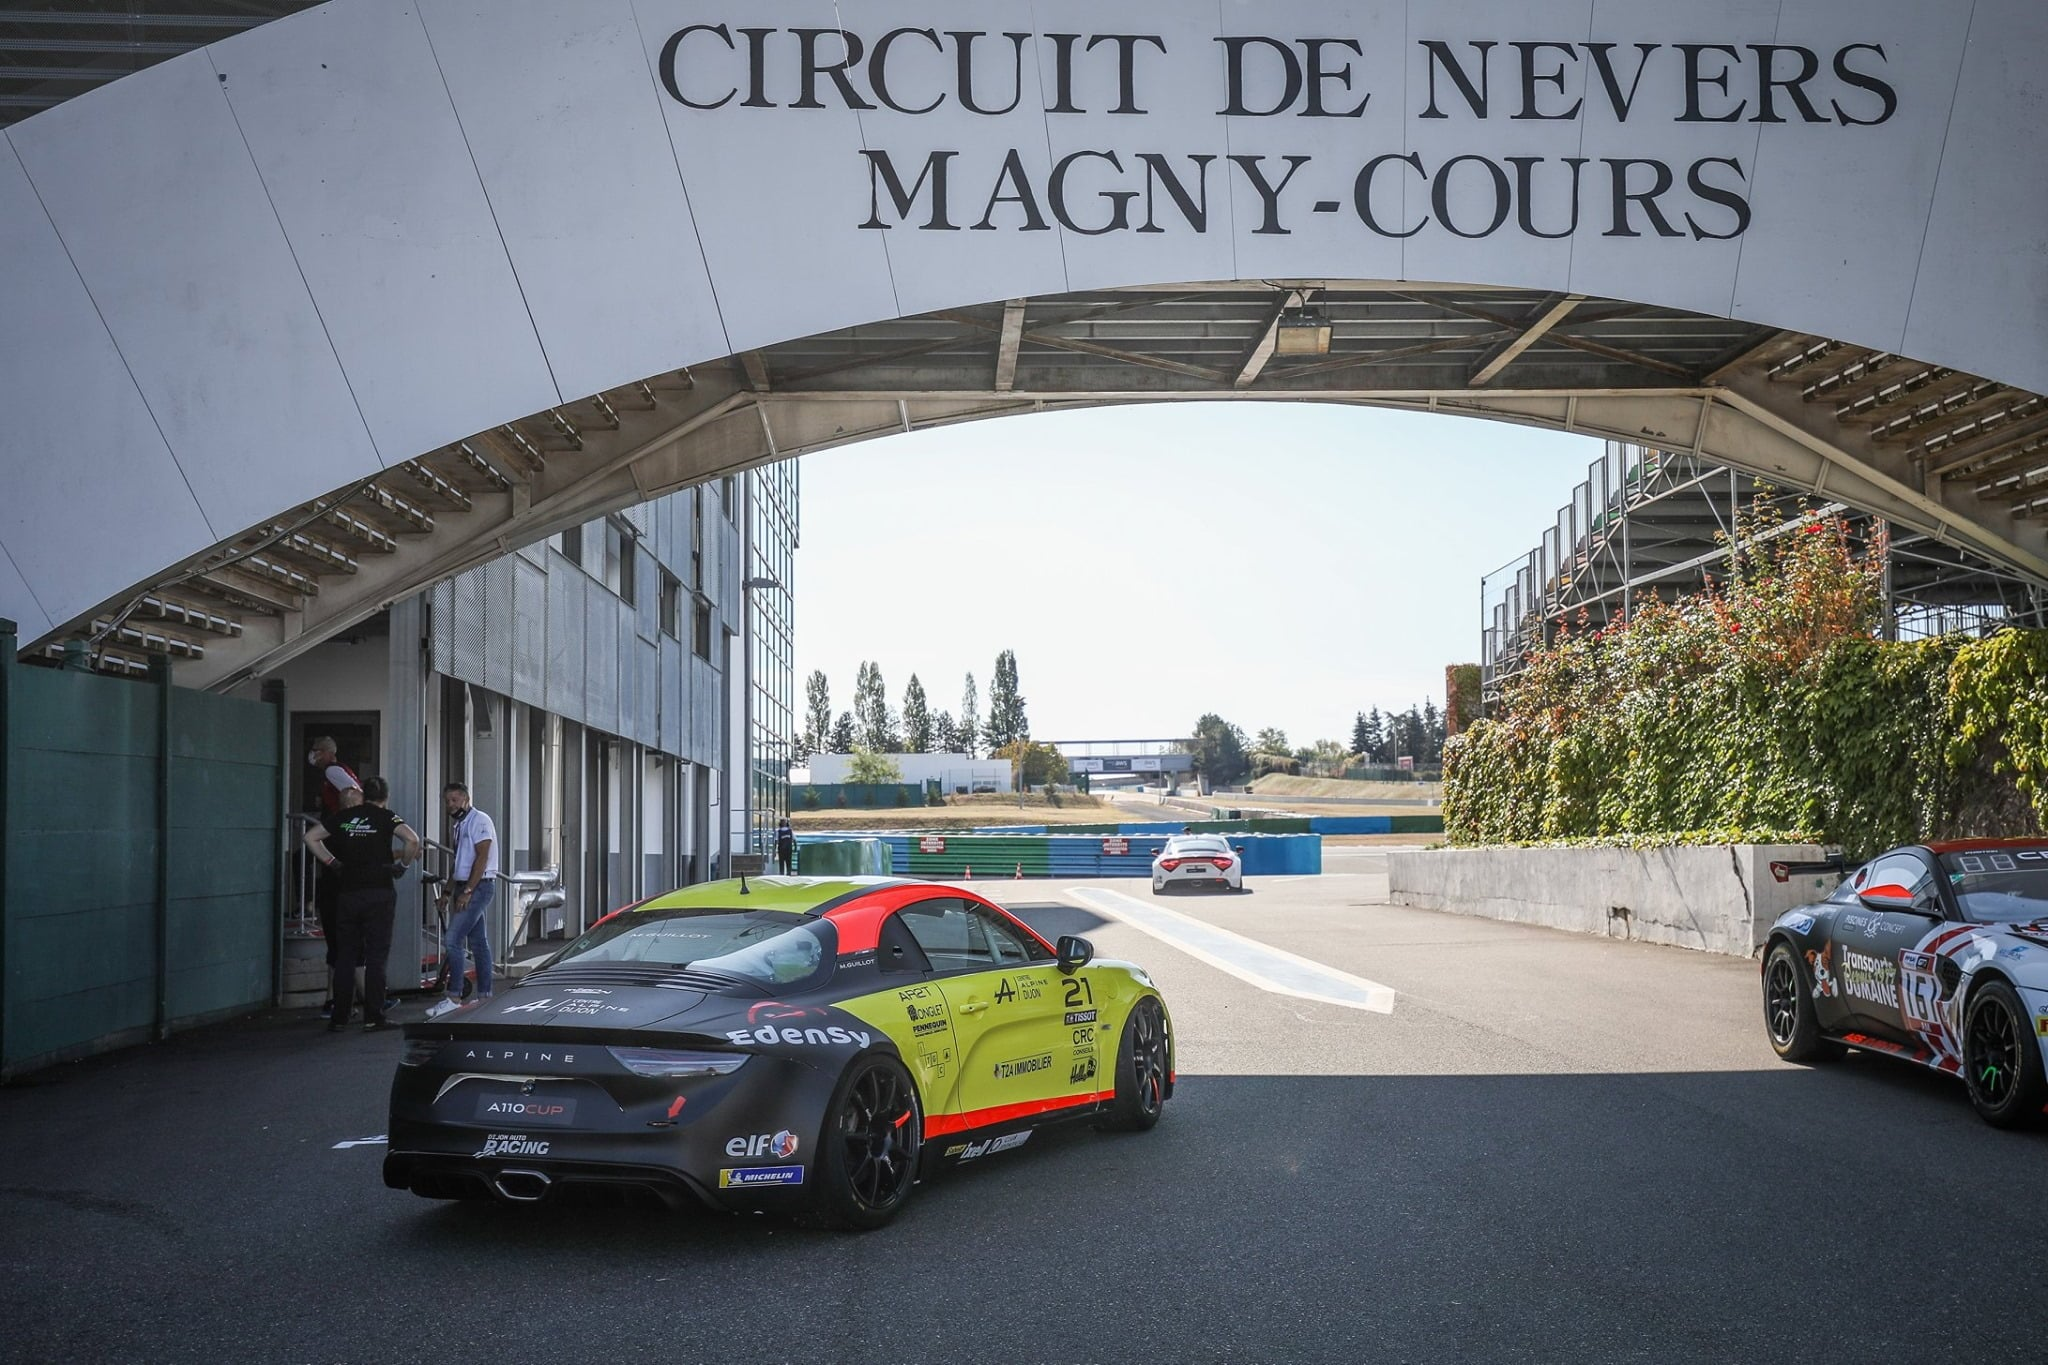 Alpine Elf Europa Cup 2020 Magny Cours A110 Cup 1 | Alpine Elf Europa Cup 2020: Jean-Baptiste Mela triomphe à Magny-Cours